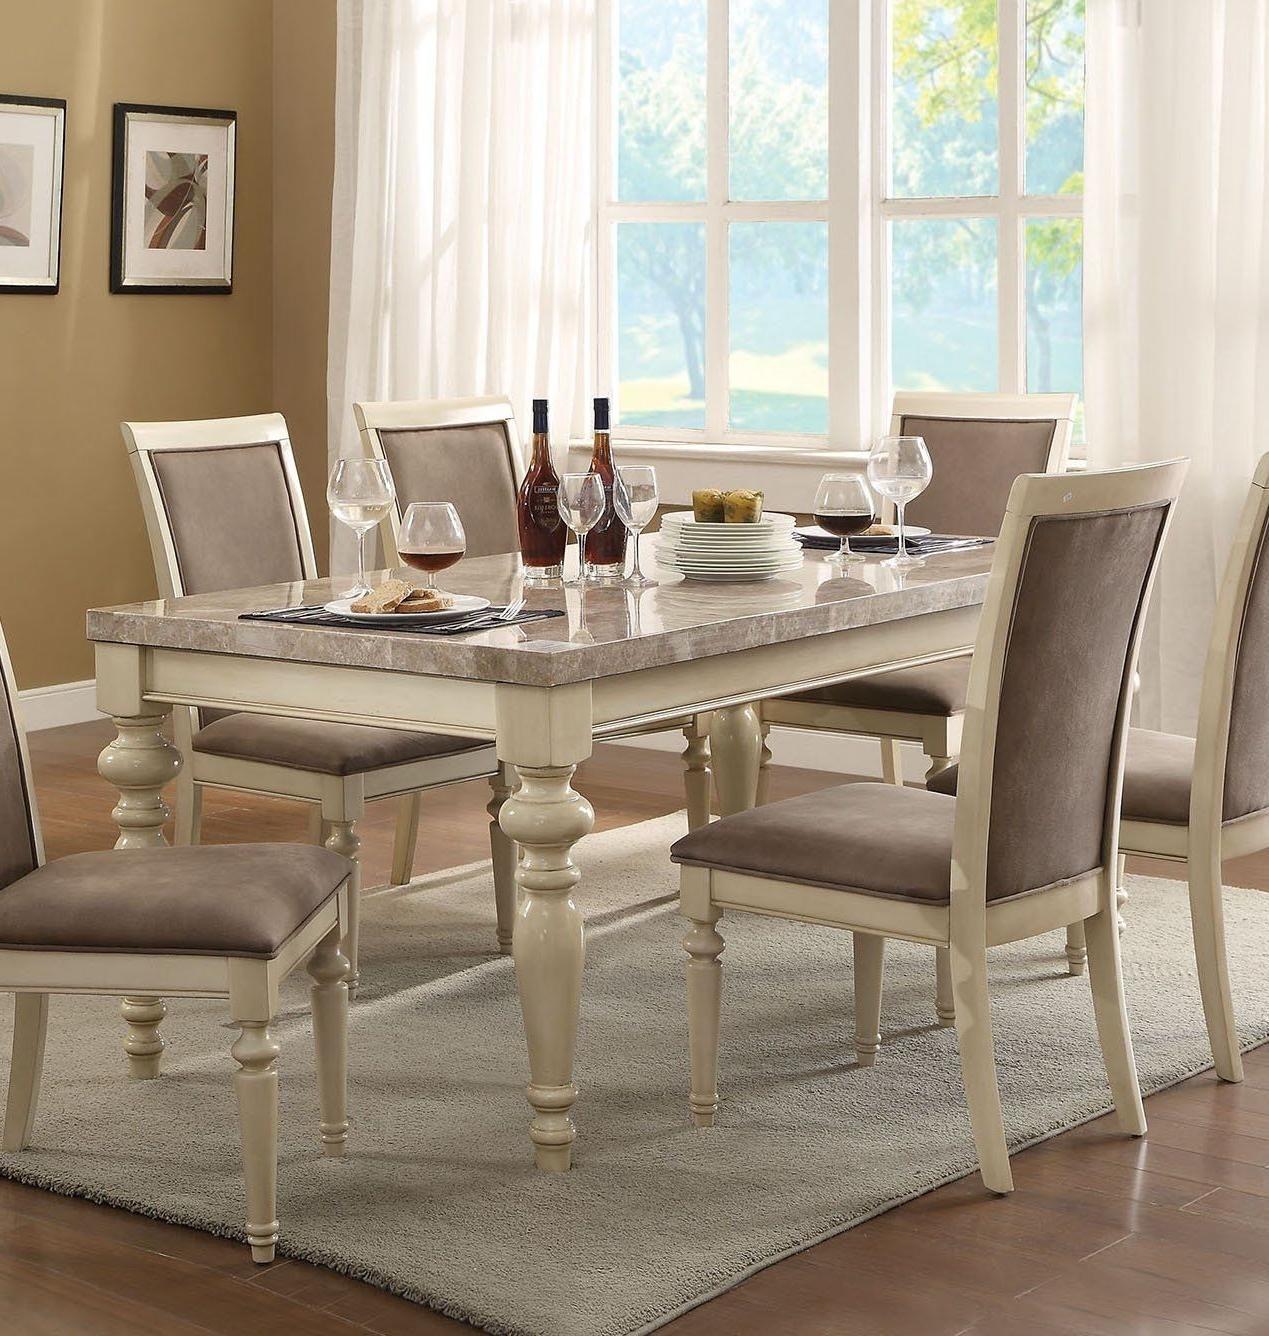 Most Current Caira 9 Piece Extension Dining Sets With Diamond Back Chairs For Acme 71705 Ryder Antique White Marble Top Dining Table (View 9 of 25)